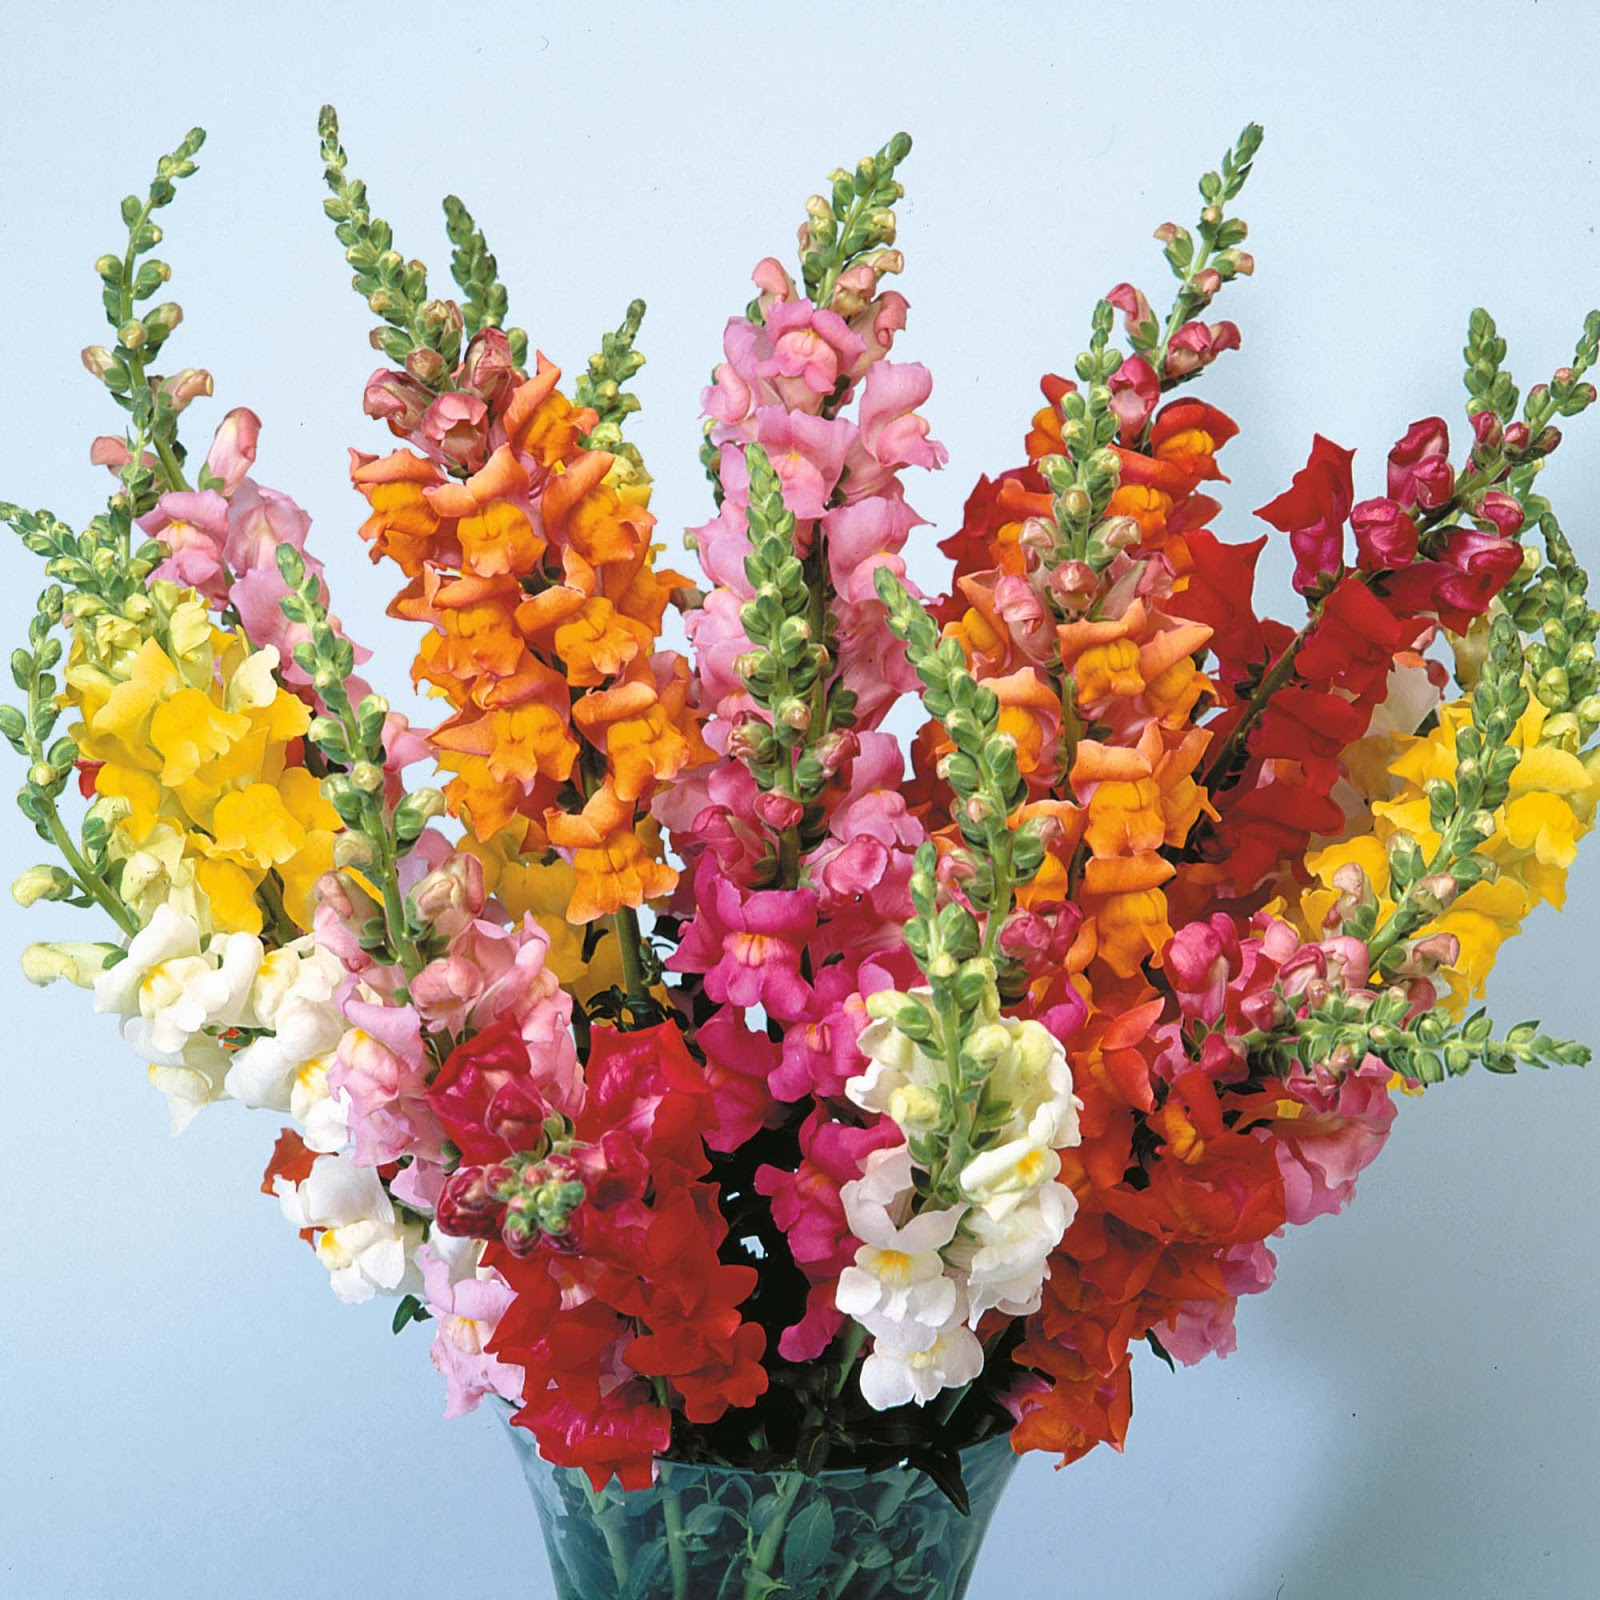 Flowers decorations: Antirrhinum and Aster Flowers